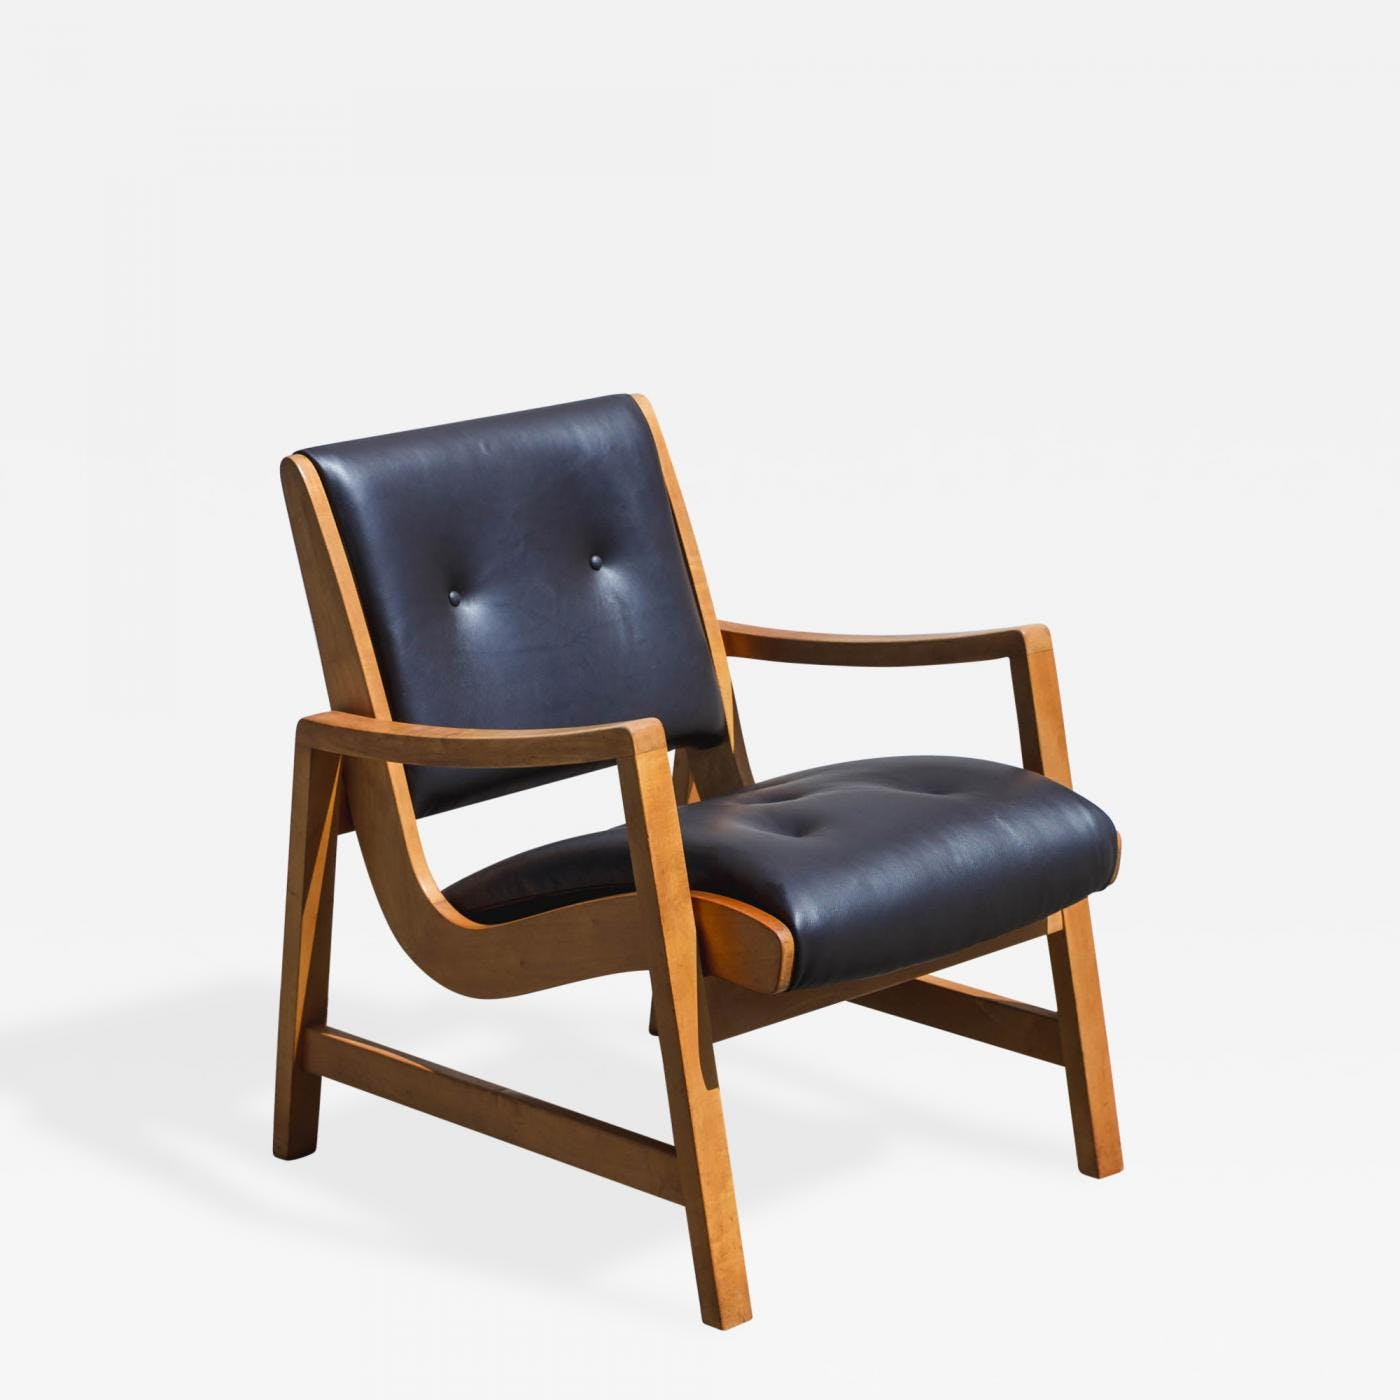 Leather And Wood Chair Jens Risom Beech Wood And Leather Lounge Chair